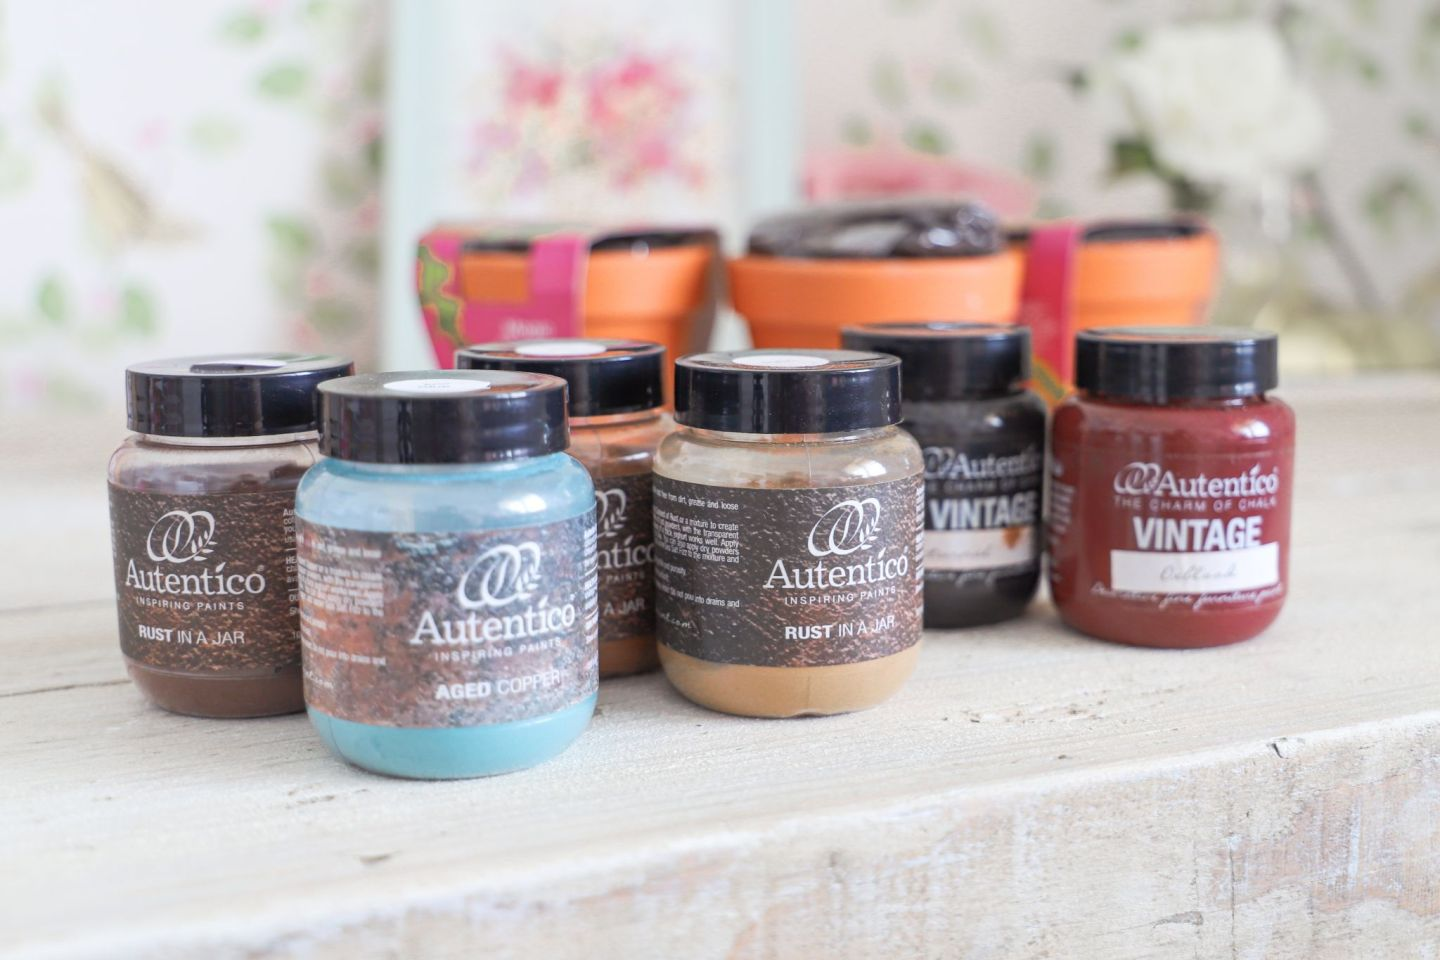 Autentico rust effect creative powders